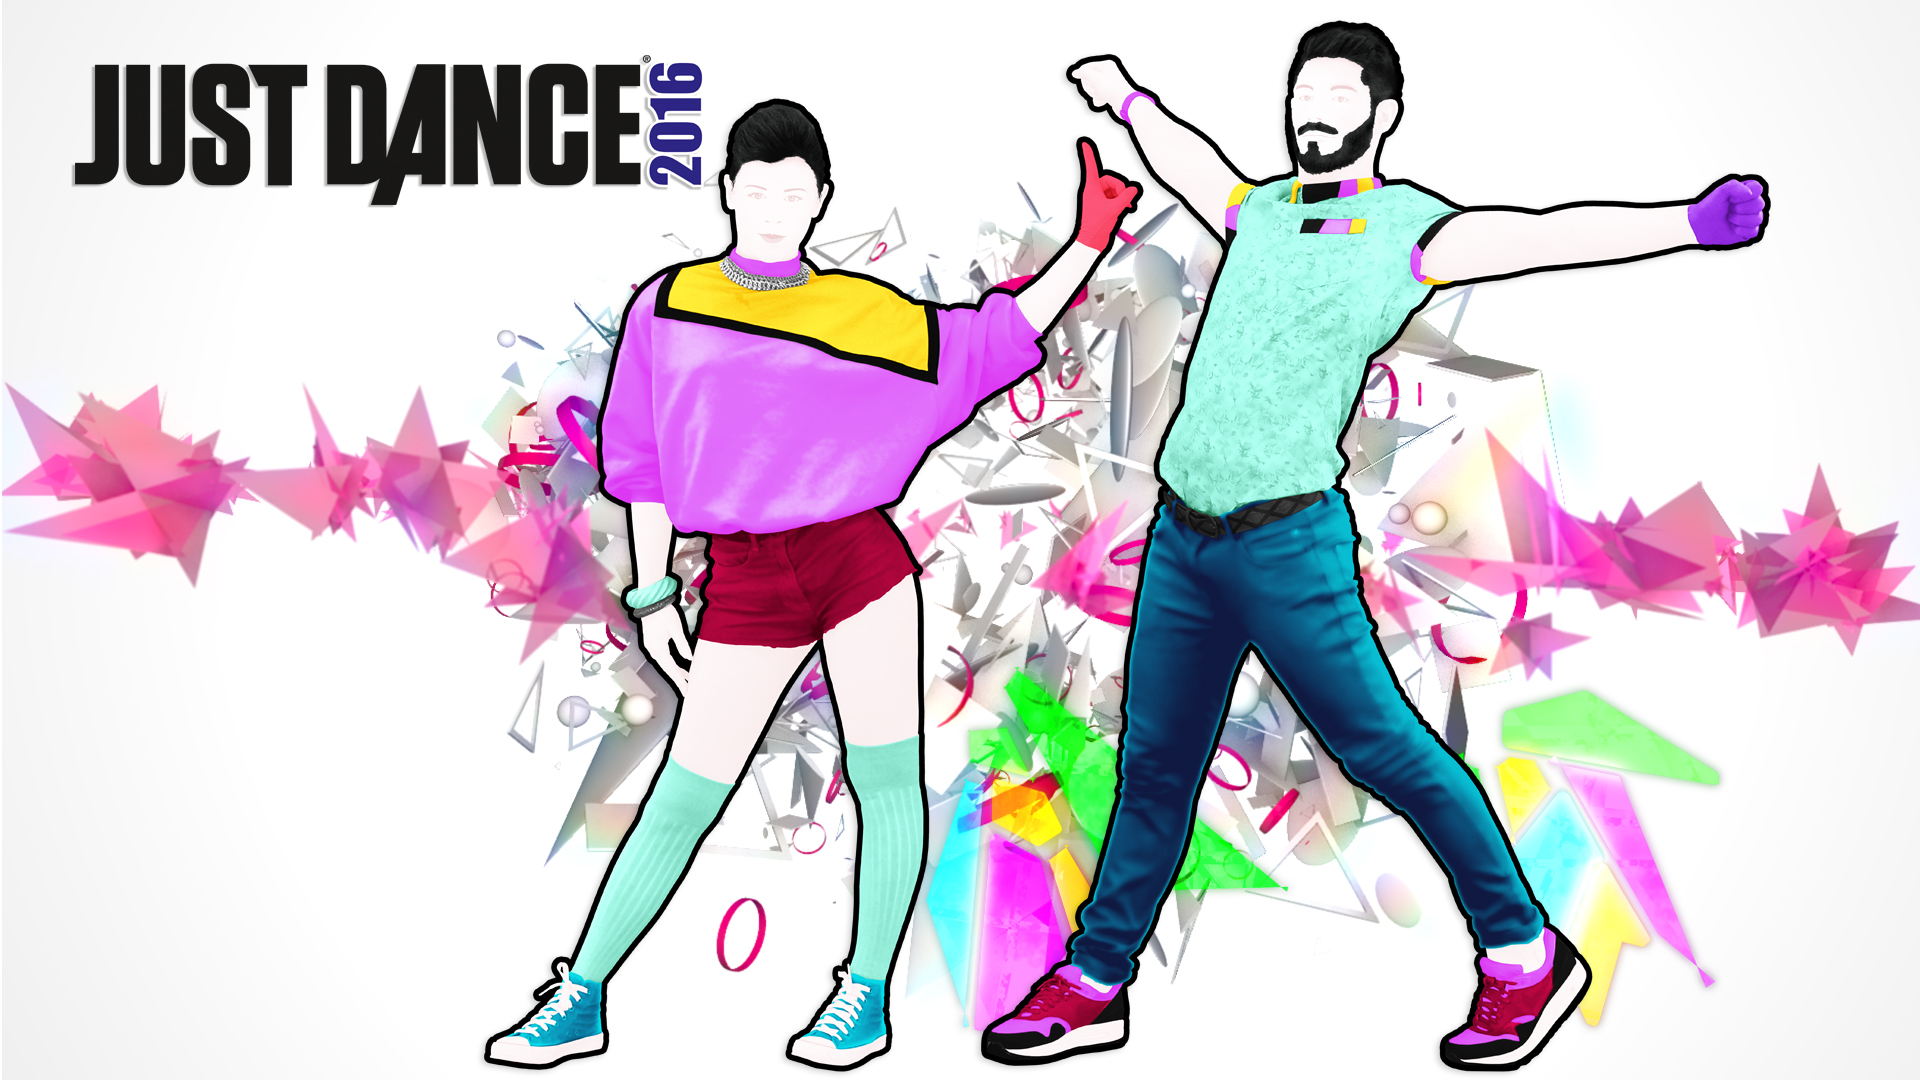 Just Dance News.